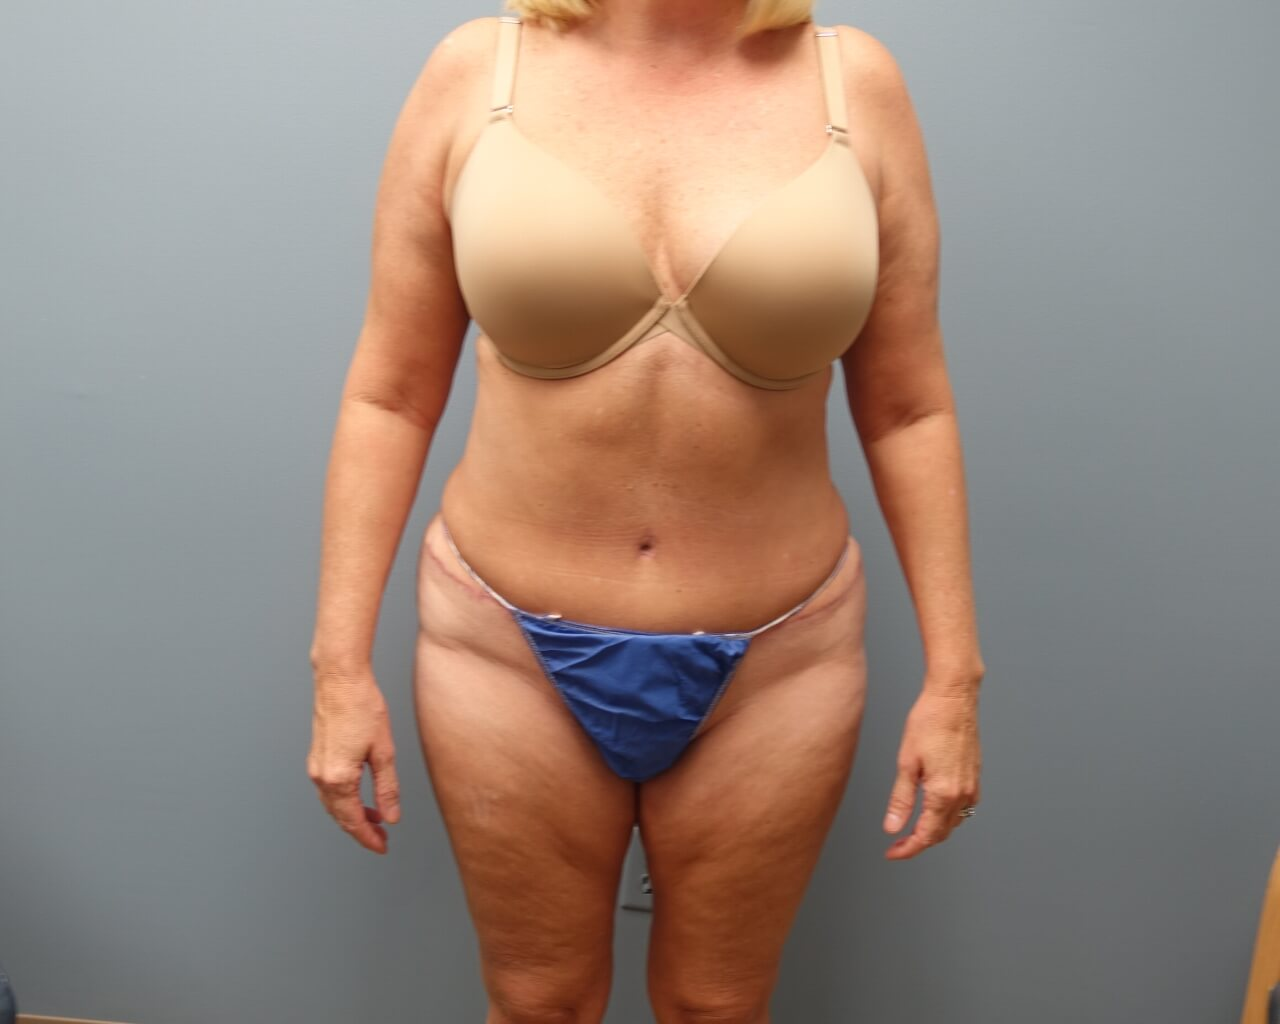 Before and After Liposuction and Tummy Tuck 1-month post operative